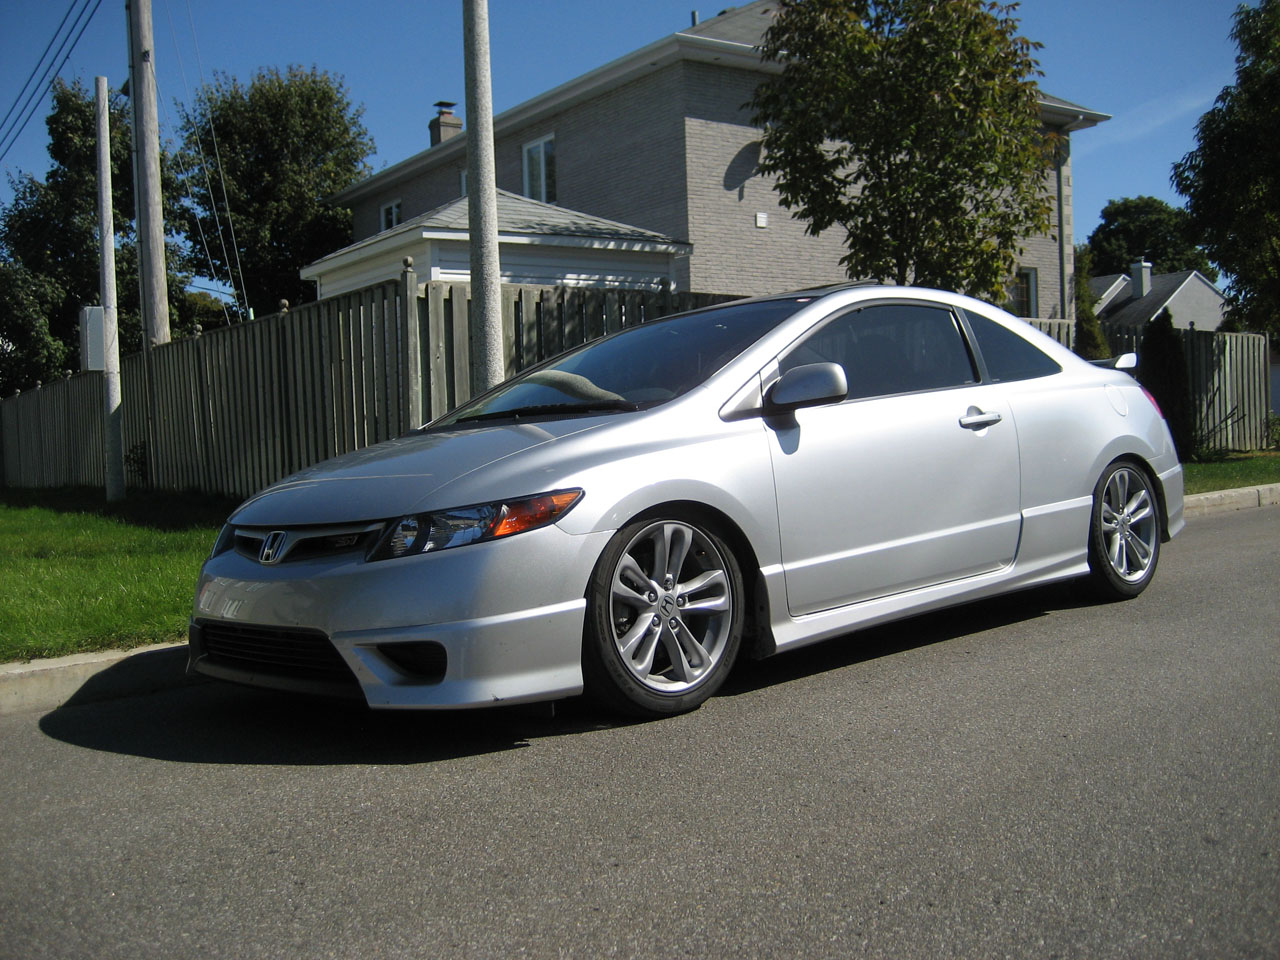 2008 honda civic si coupe 1 4 mile drag racing timeslip specs 0 60. Black Bedroom Furniture Sets. Home Design Ideas